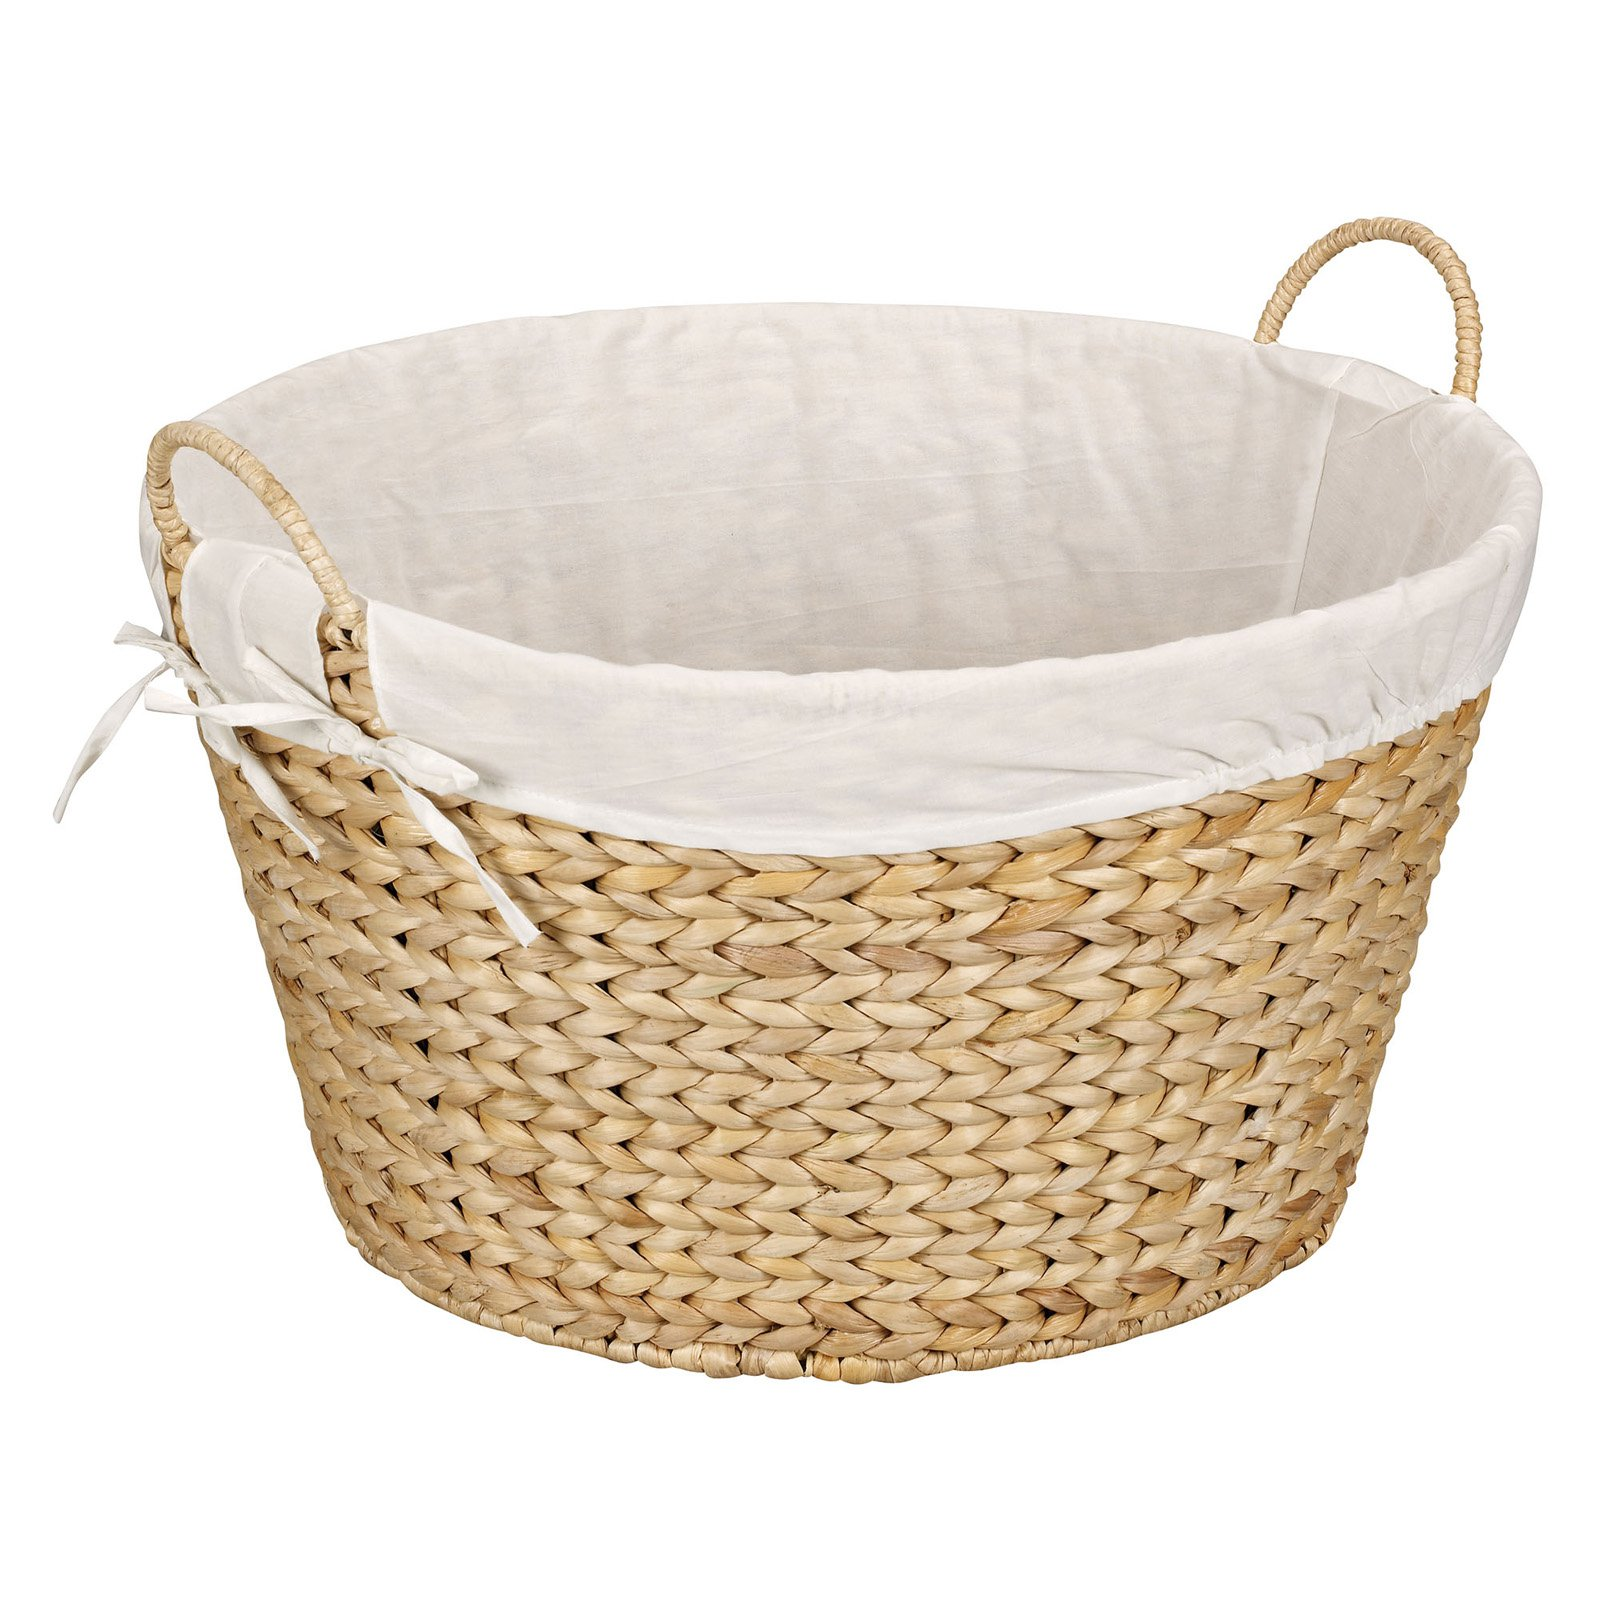 Household Essentials Banana Leaf Round Laundry Basket